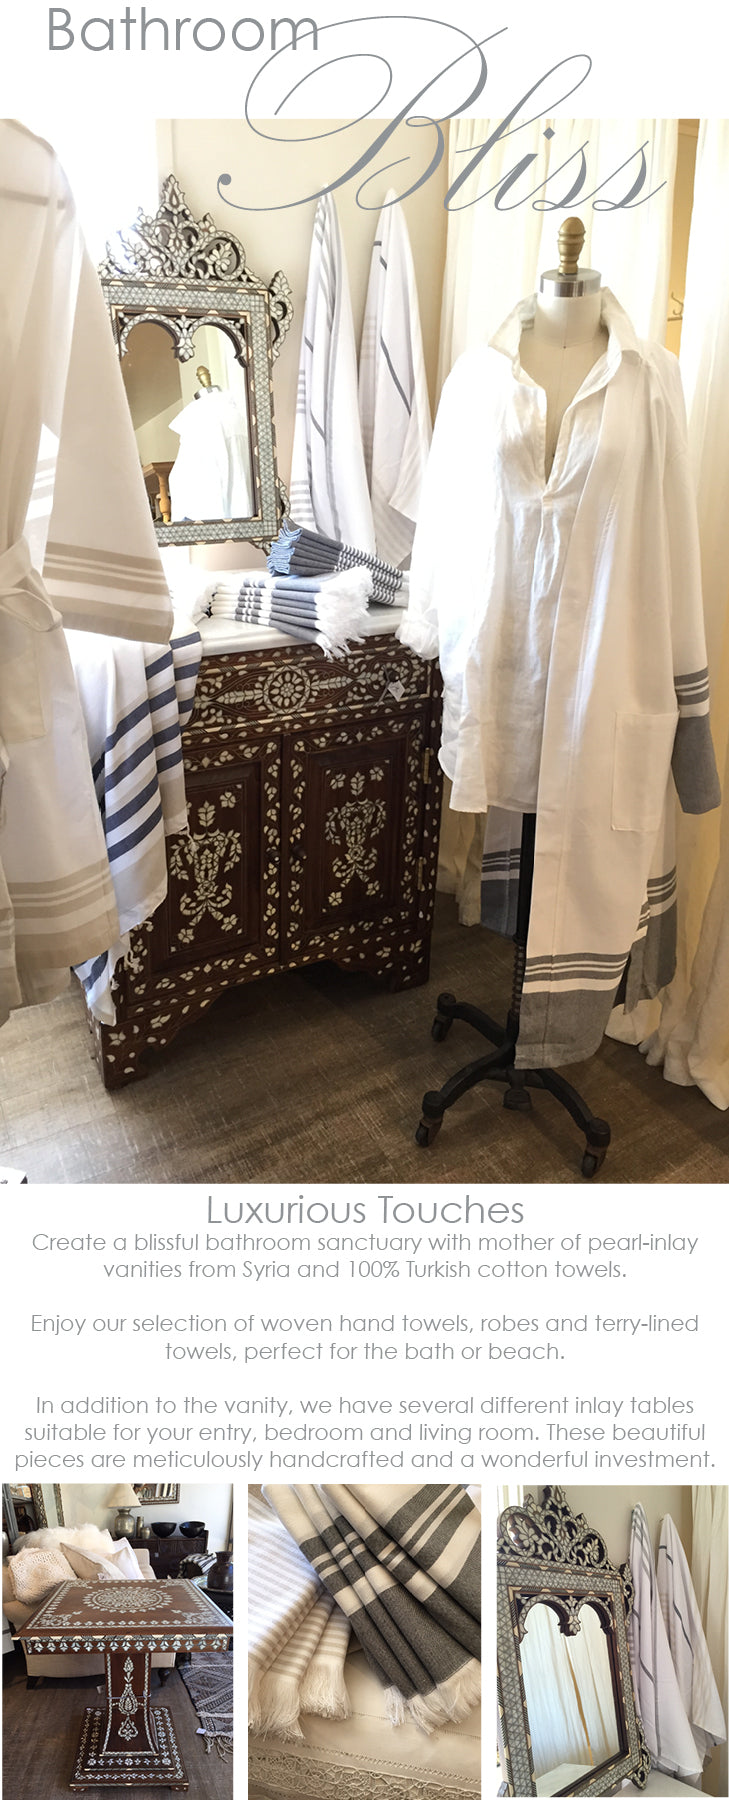 Bathroom Bliss with Turkish Cotton Towels